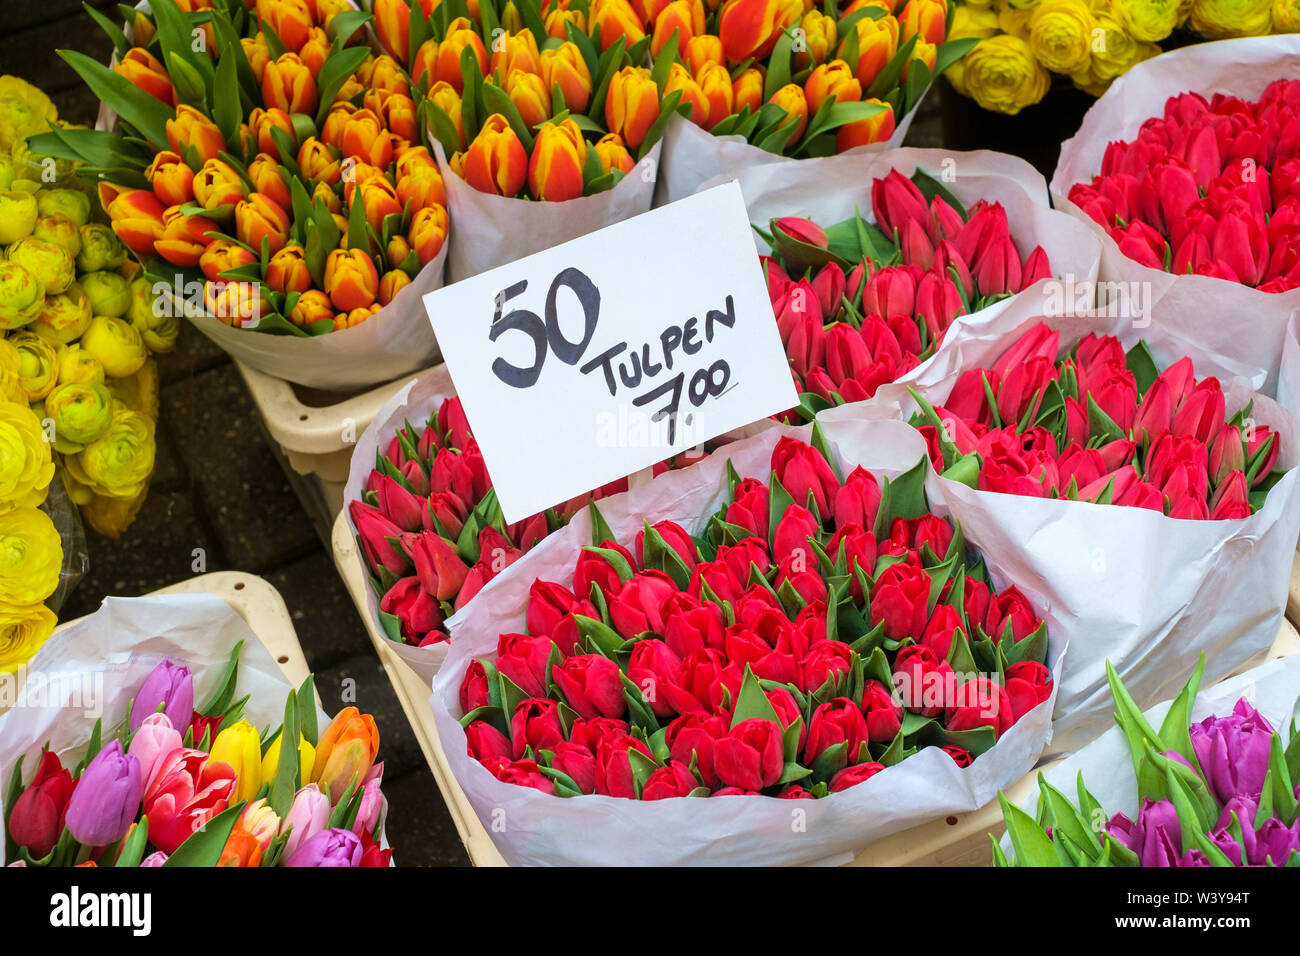 Bouquets of tulips for sale in the Bloemenmarkt floating flower market, Amsterdam, North Holland, Netherlands - Stock Image